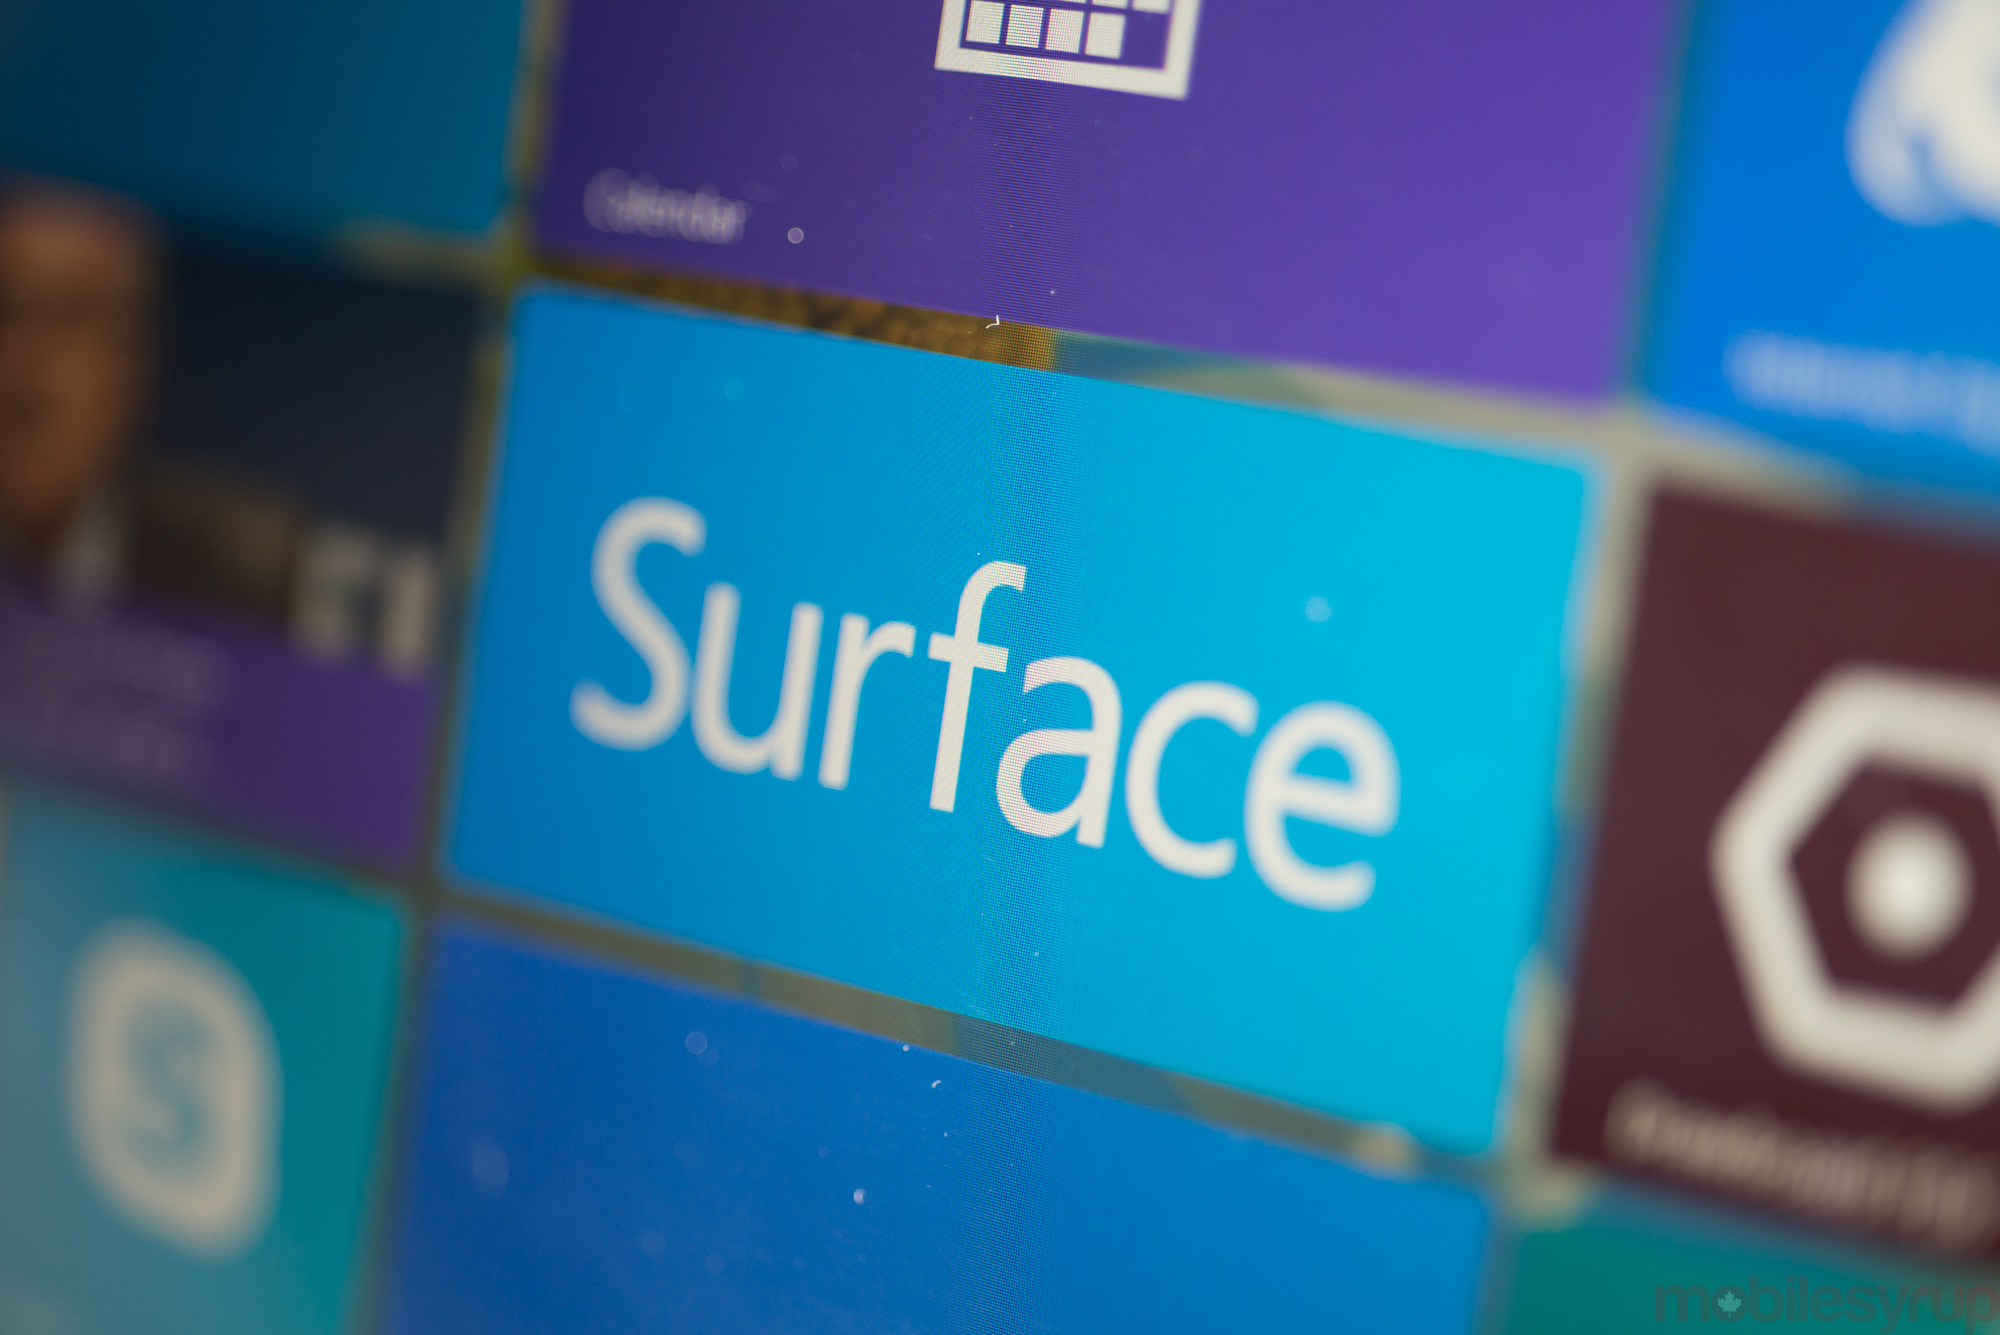 surface3review-5989